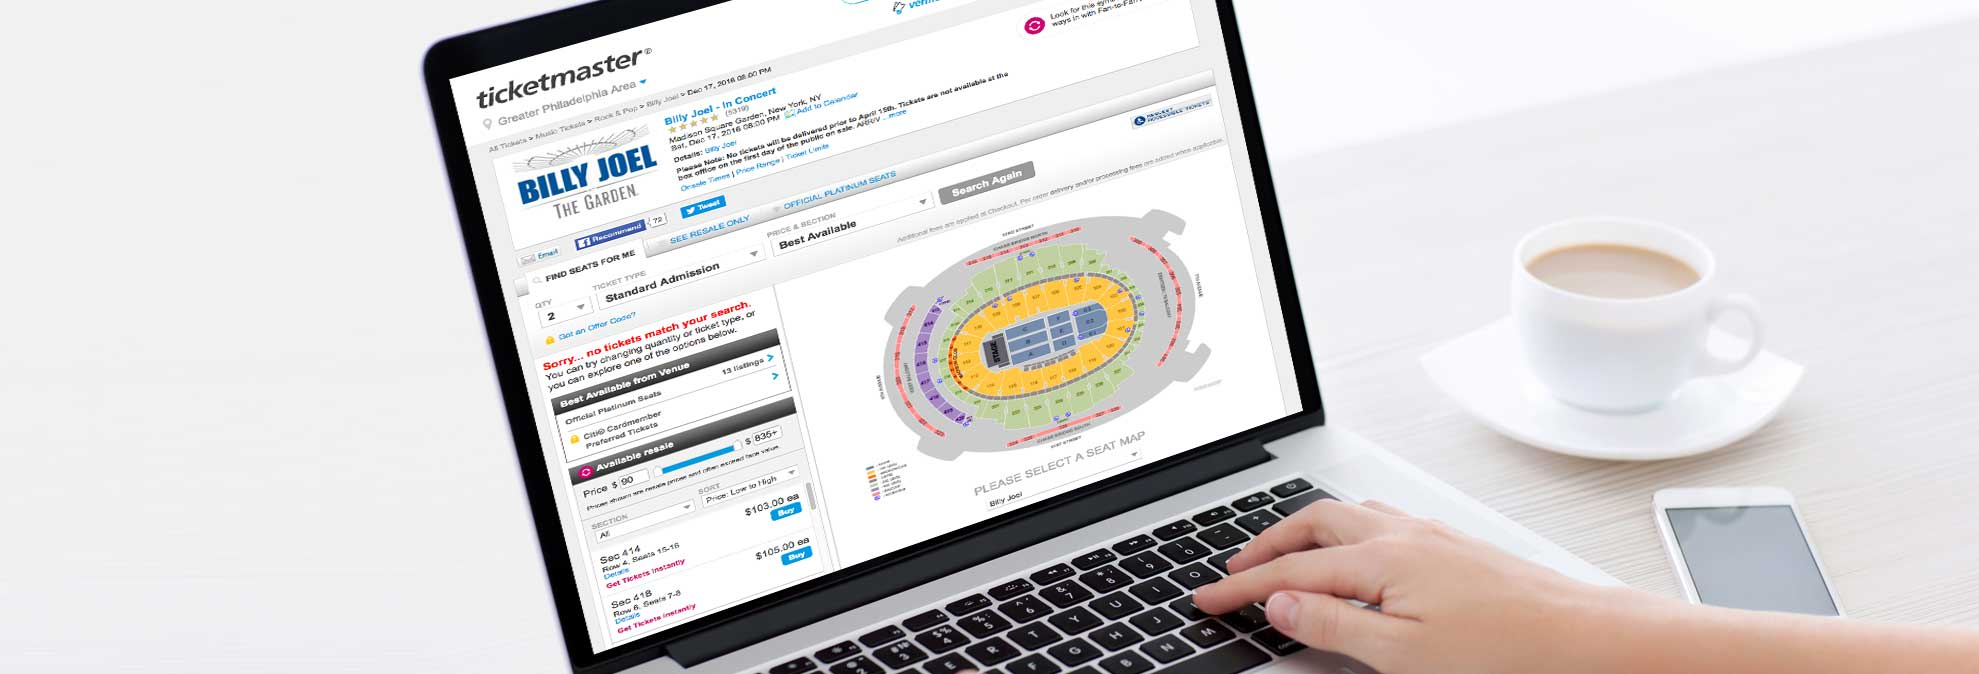 Why Ticket Prices Are Going Through the Roof - Consumer Reports